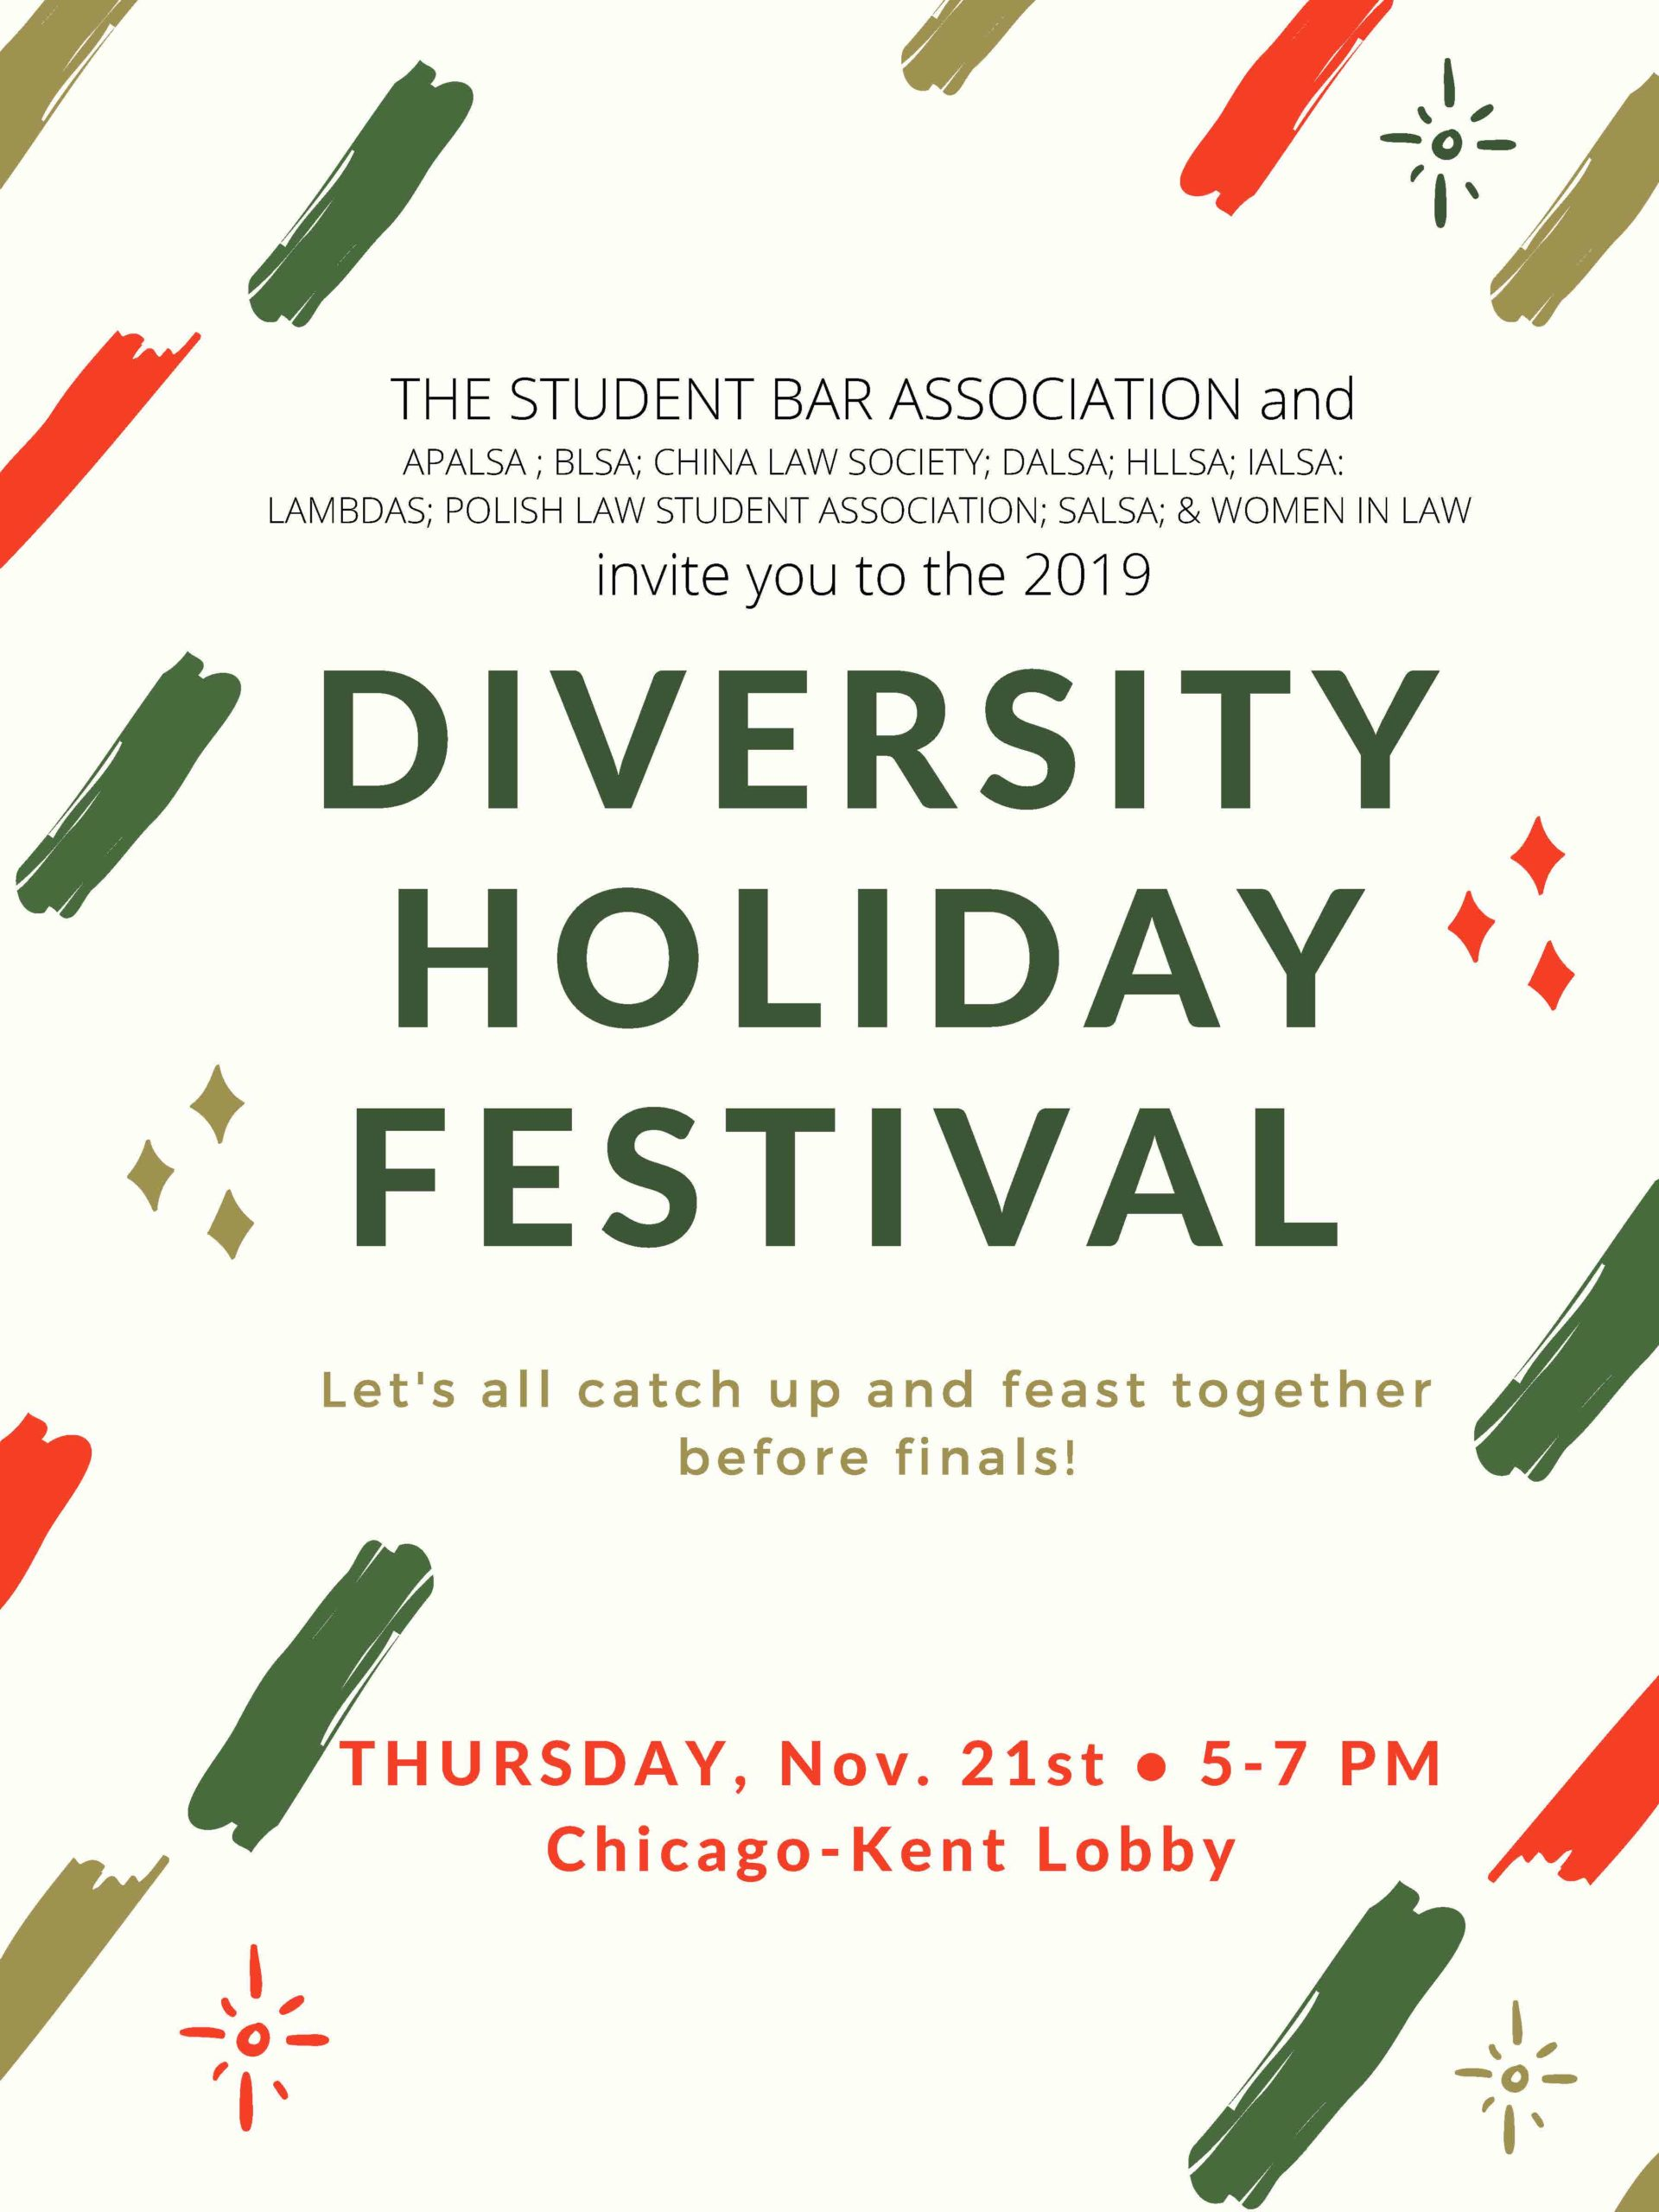 2019 Diversity Holiday Festival Flyer